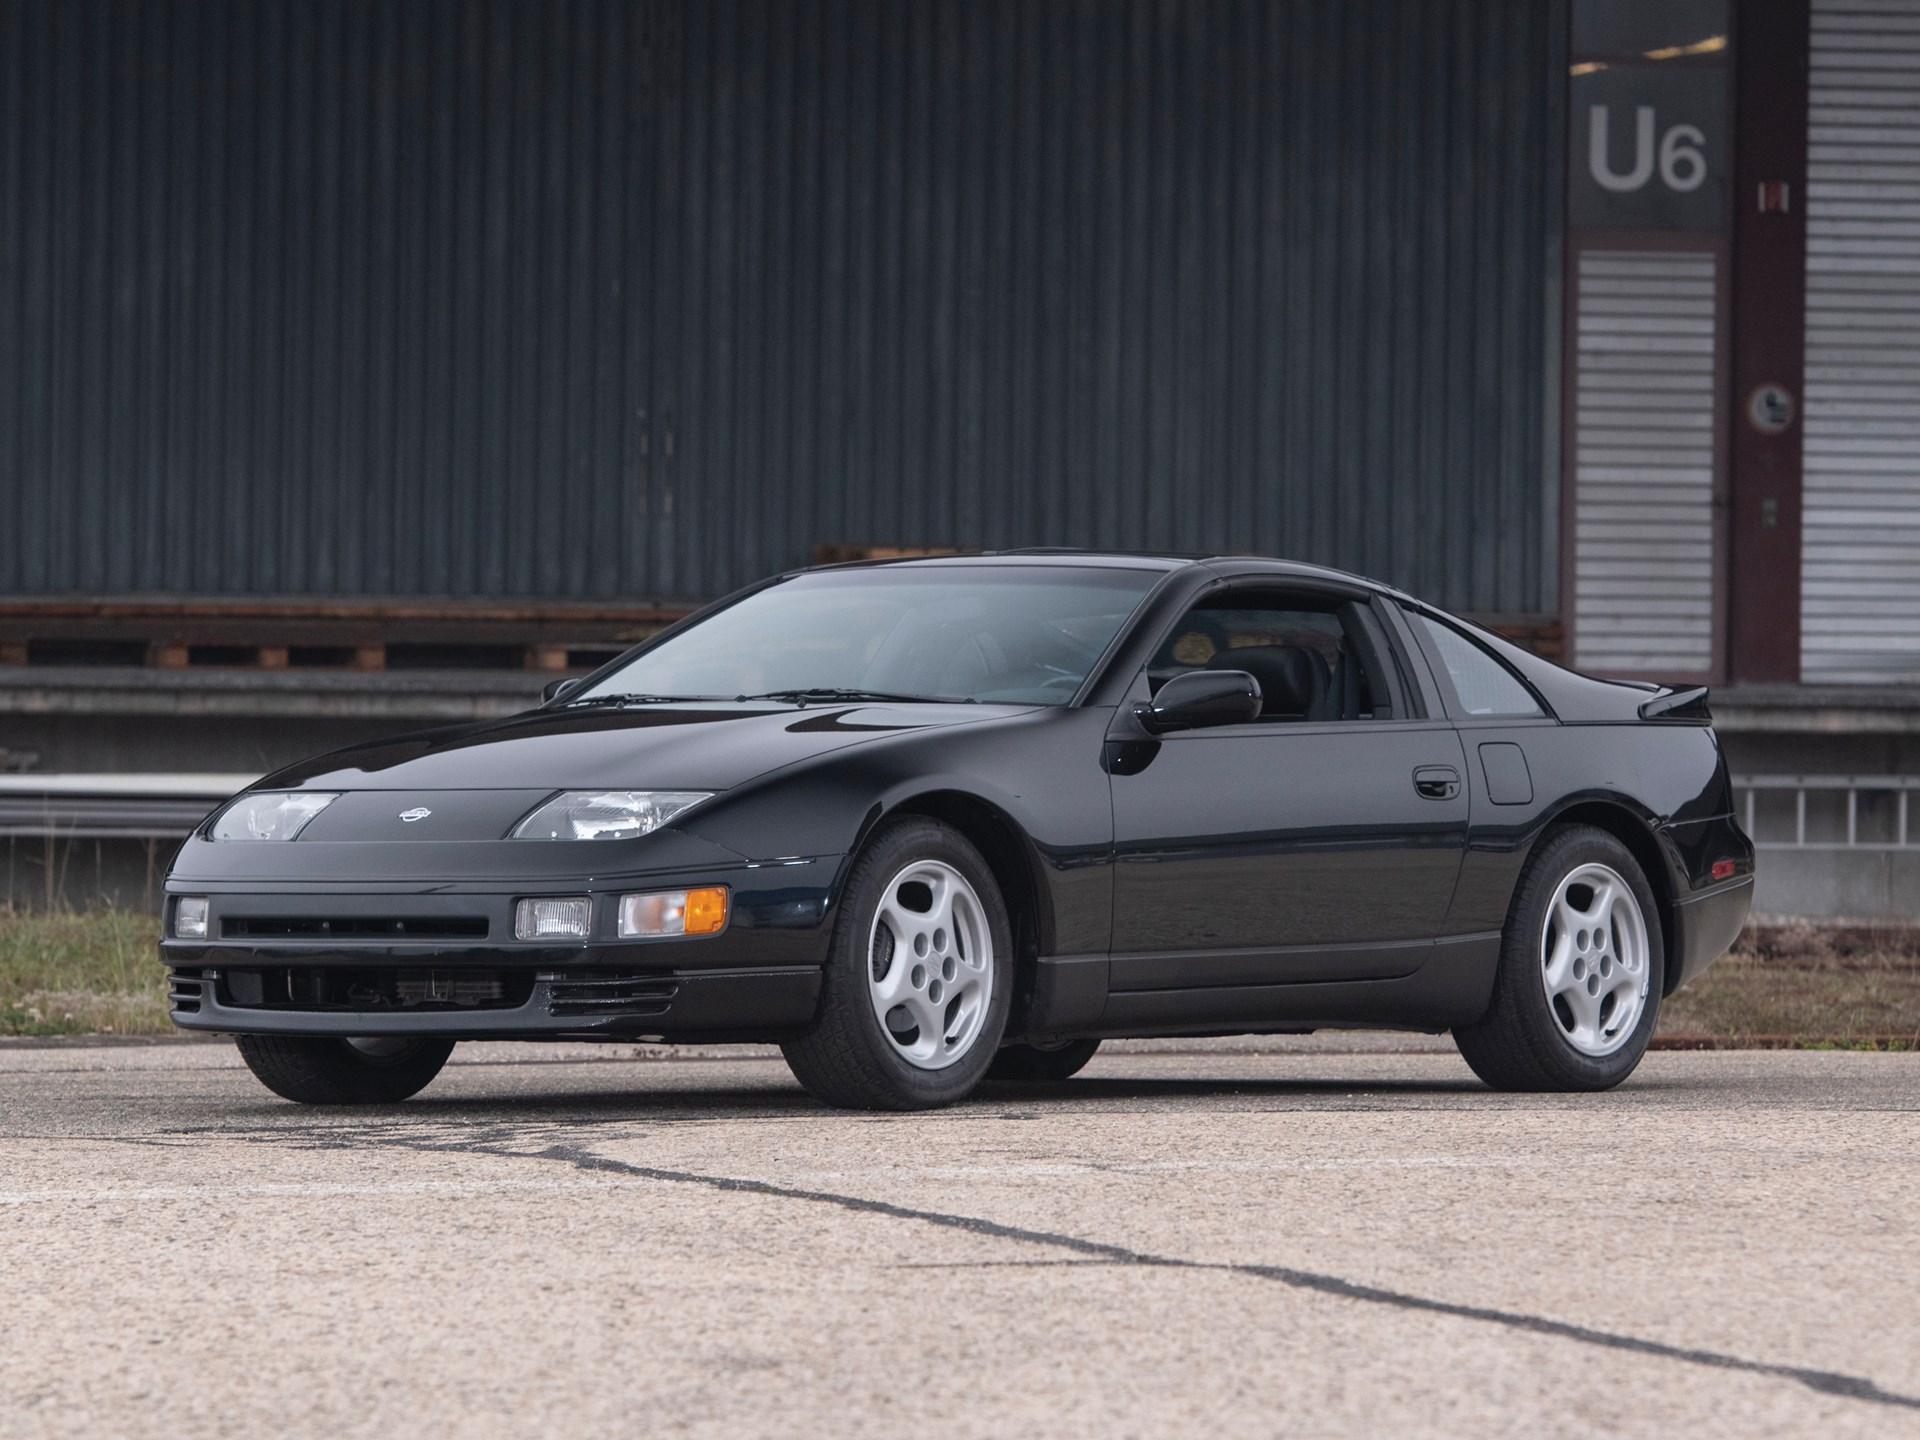 rm sotheby 39 s 1991 nissan 300zx twin turbo fort. Black Bedroom Furniture Sets. Home Design Ideas